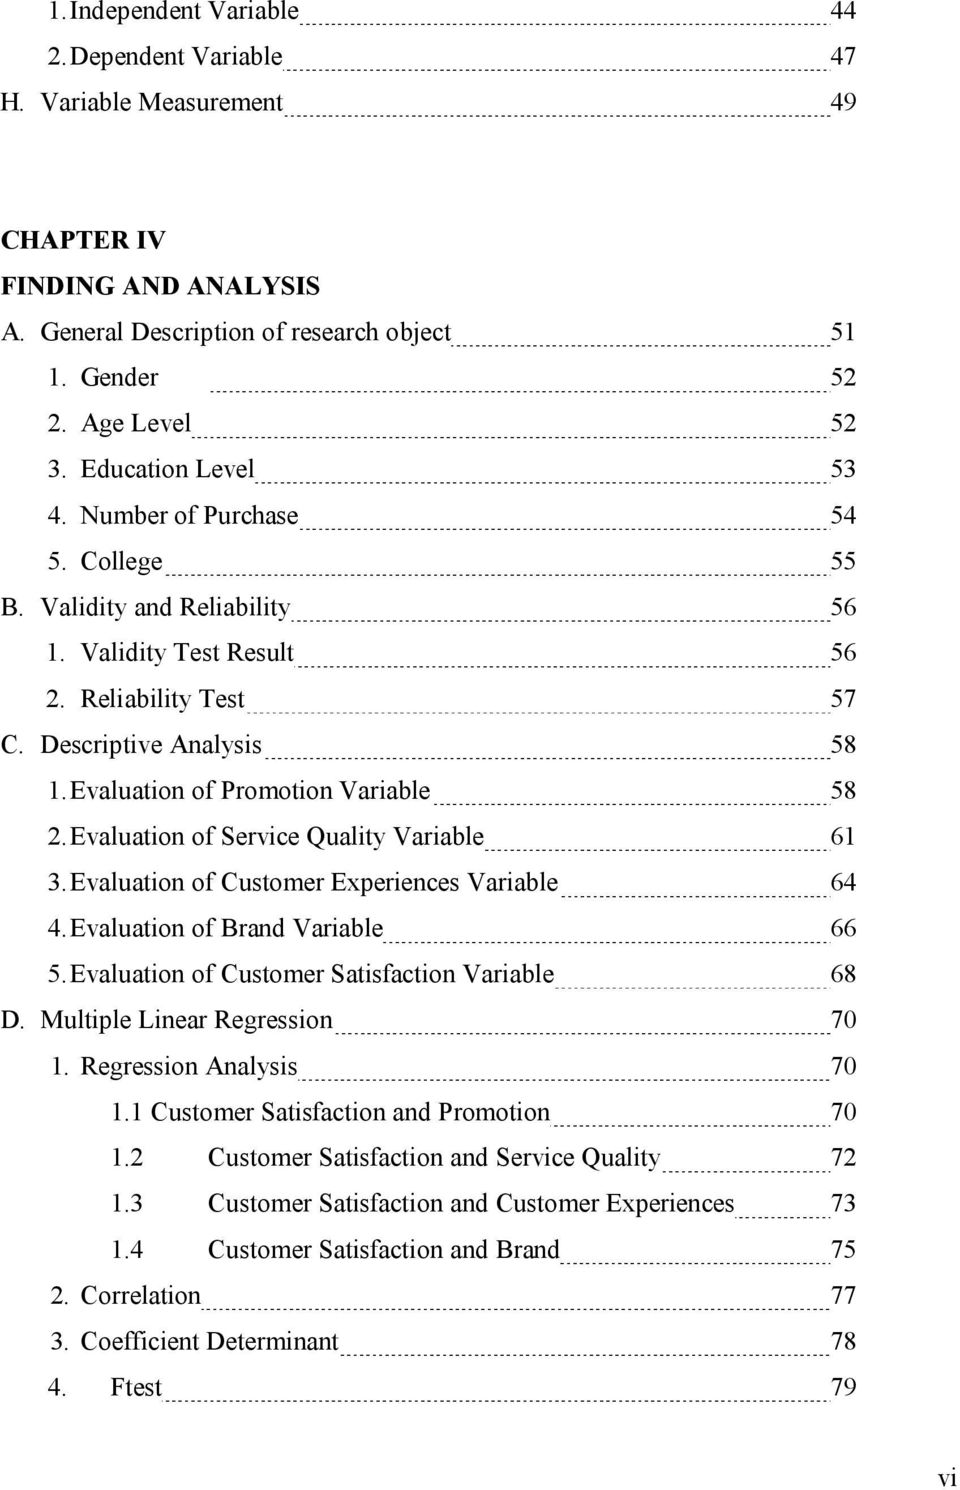 Evaluation of Promotion Variable 58 2. Evaluation of Service Quality Variable 61 3. Evaluation of Customer Experiences Variable 64 4. Evaluation of Brand Variable 66 5.